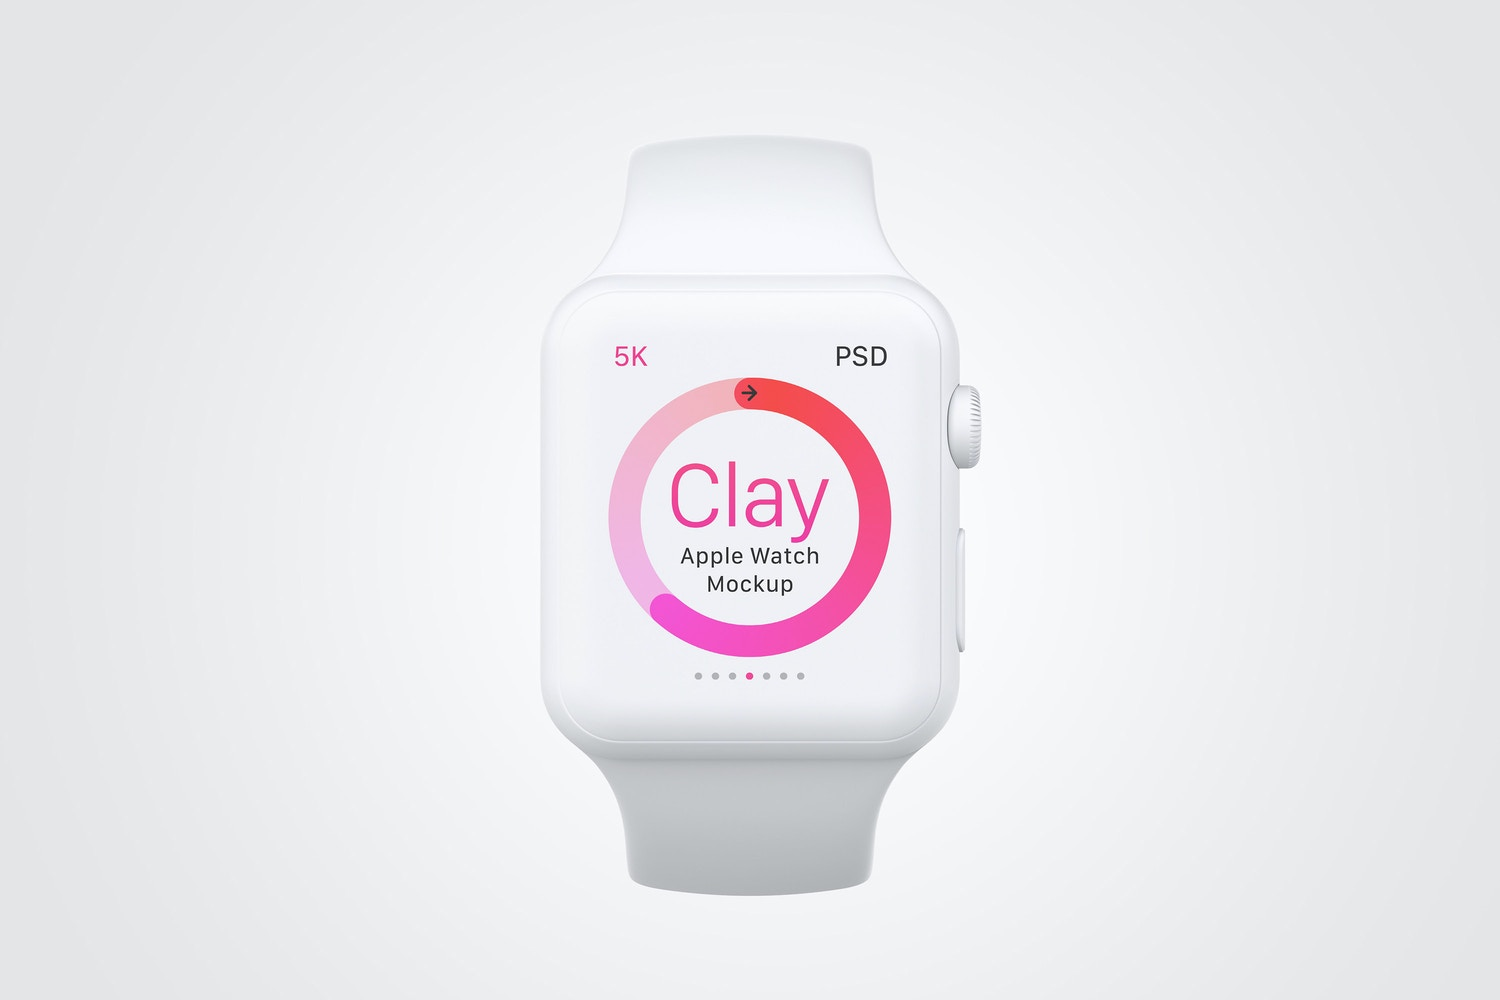 Clay Apple Watch Mockup 04 by Original Mockups on Original Mockups